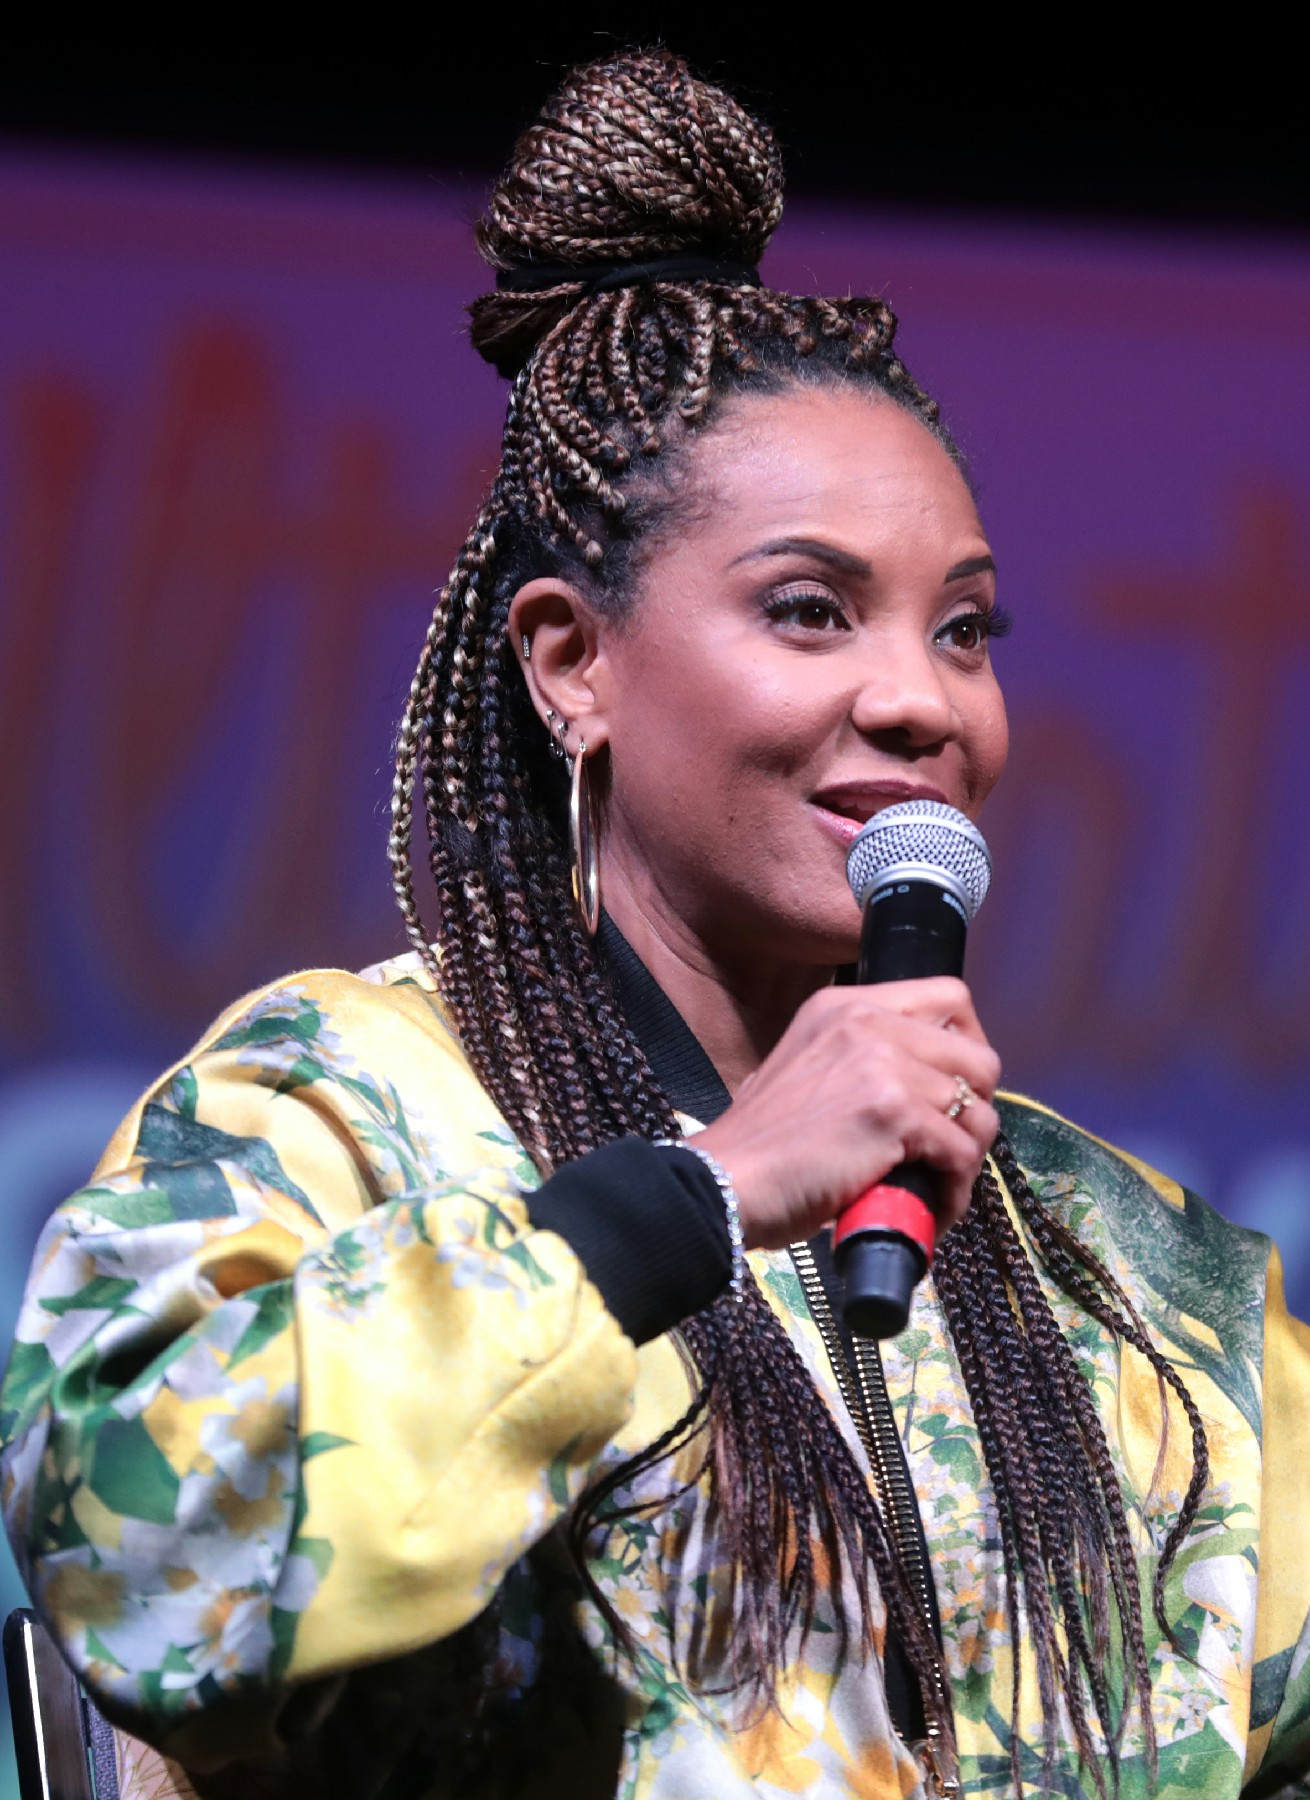 Oct. 11, 1970 – First female rapper to earn a gold single, MC Lyte born